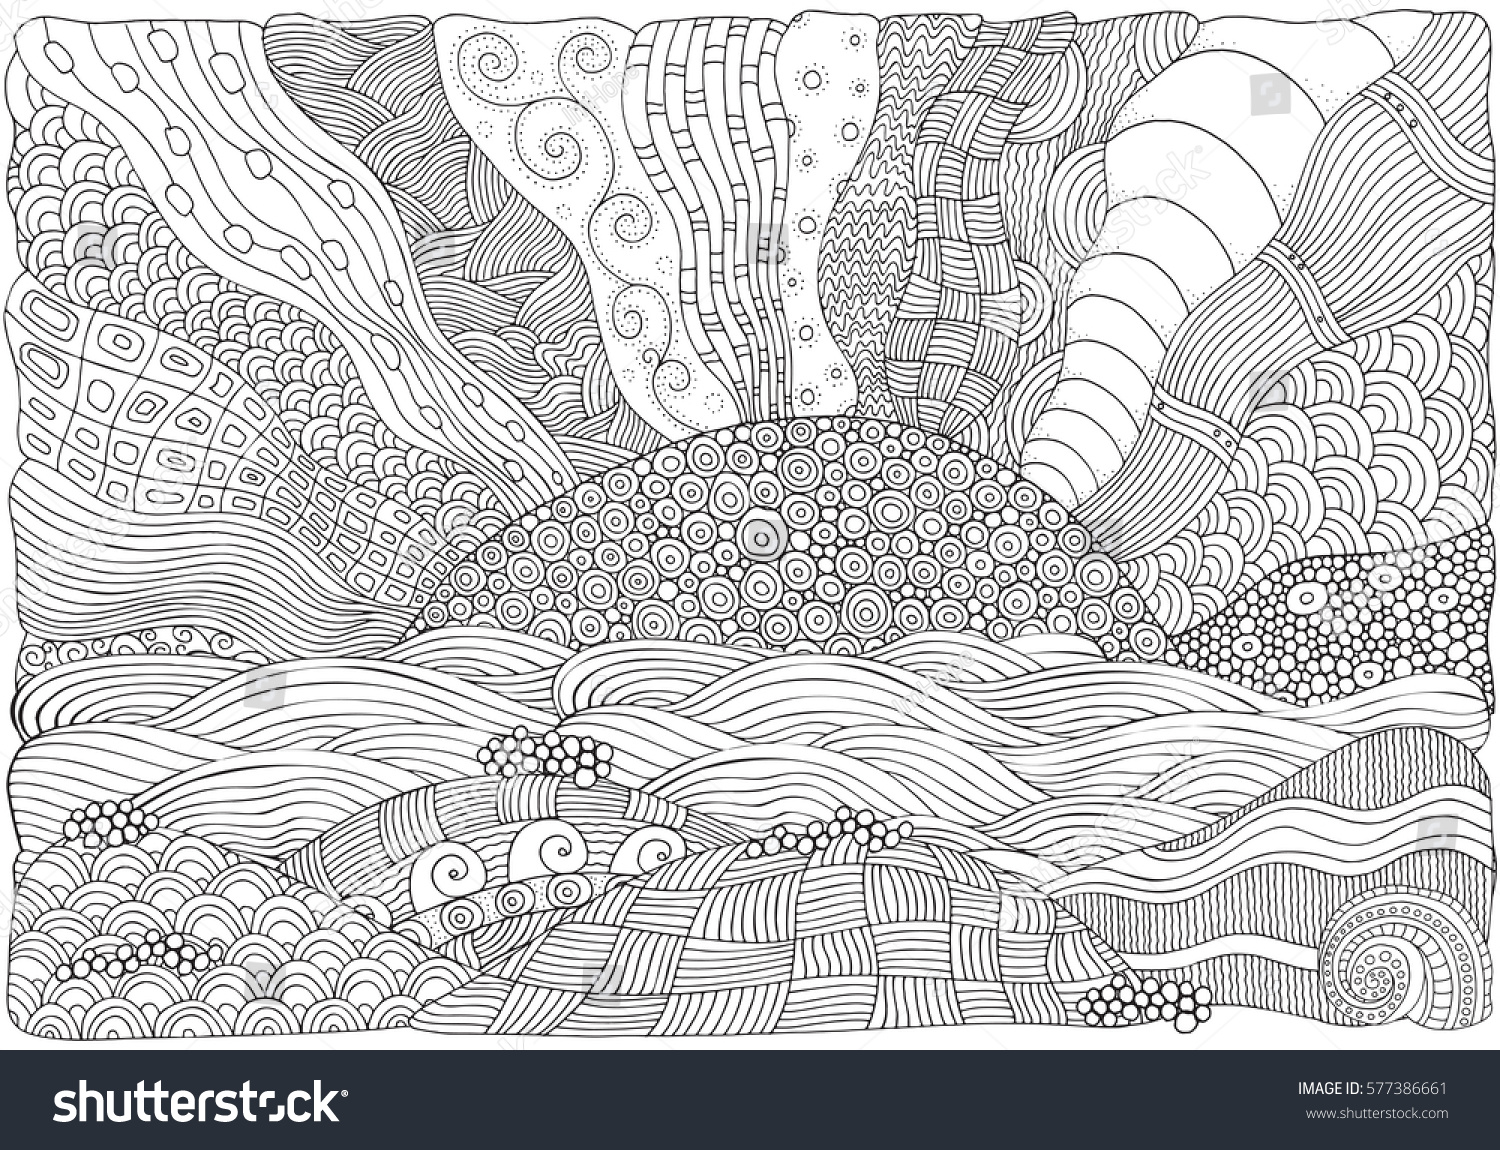 Stress less coloring by the shore - Black And White Fantasy Picture With Sun And Sea Shore Beach Landscape Pattern For